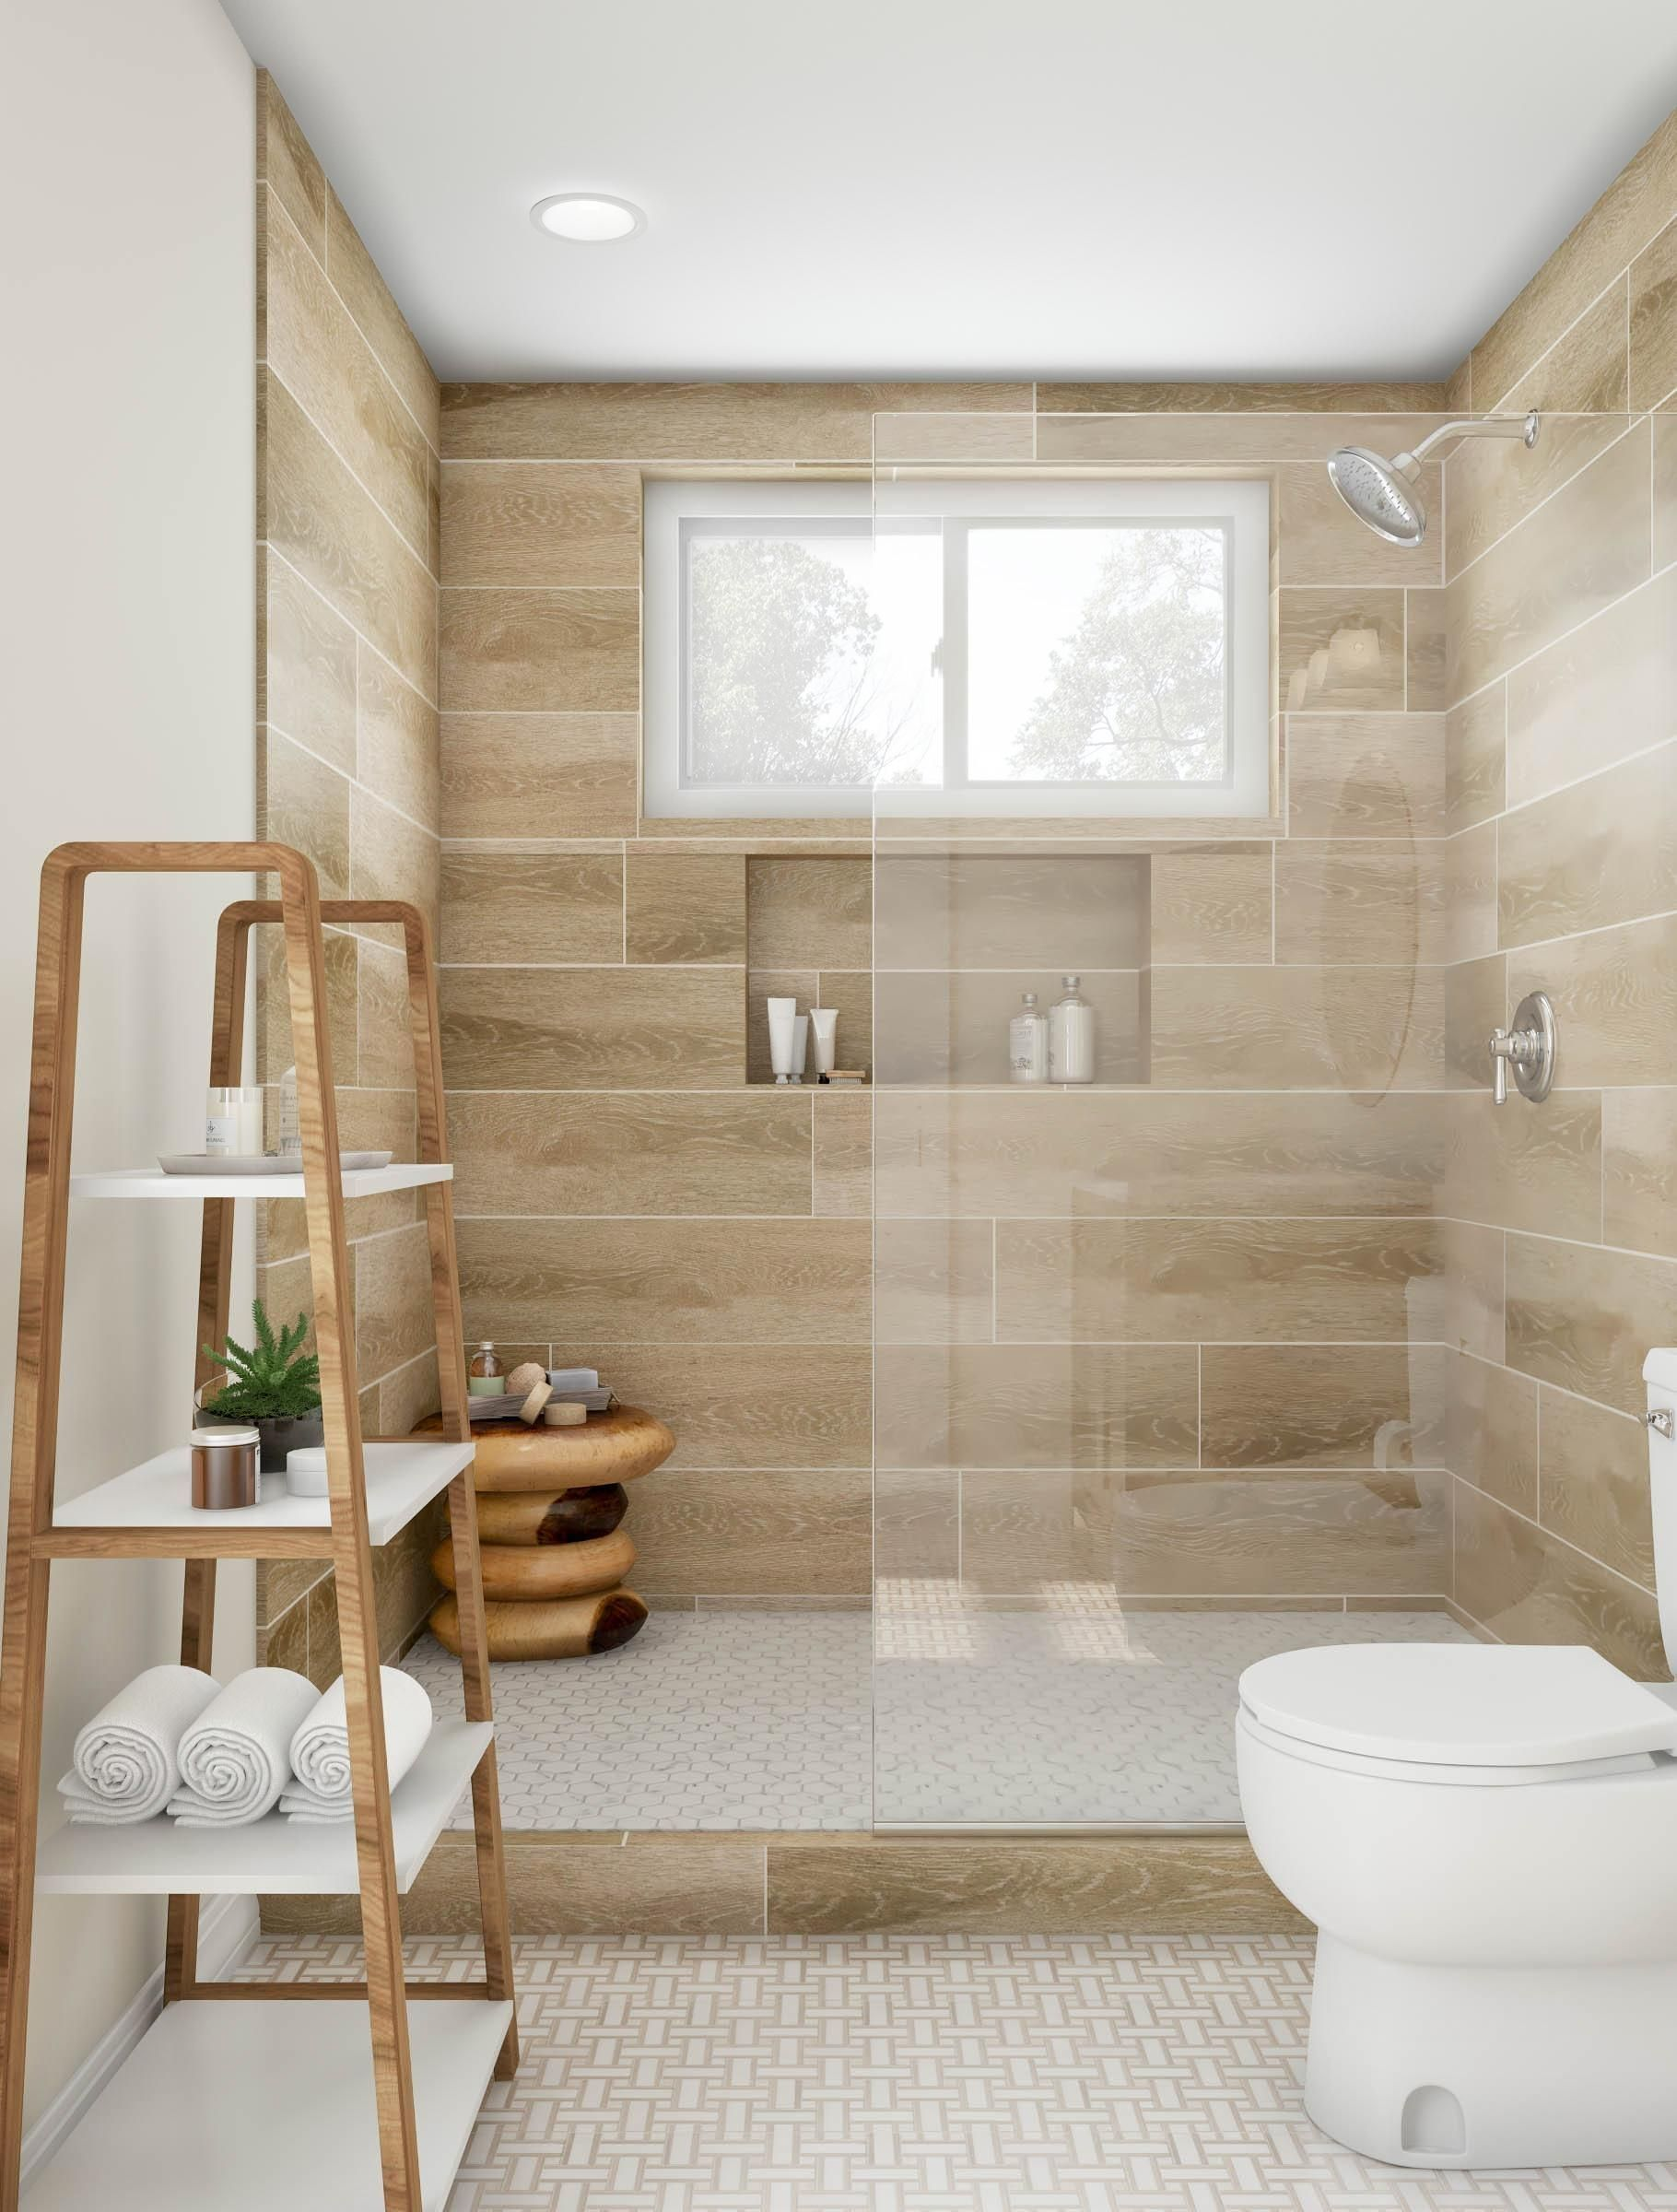 49 Clever Small Bathroom Decorating Ideas Bathroom Design Small Simple Bathroom Remodel Simple Bathroom